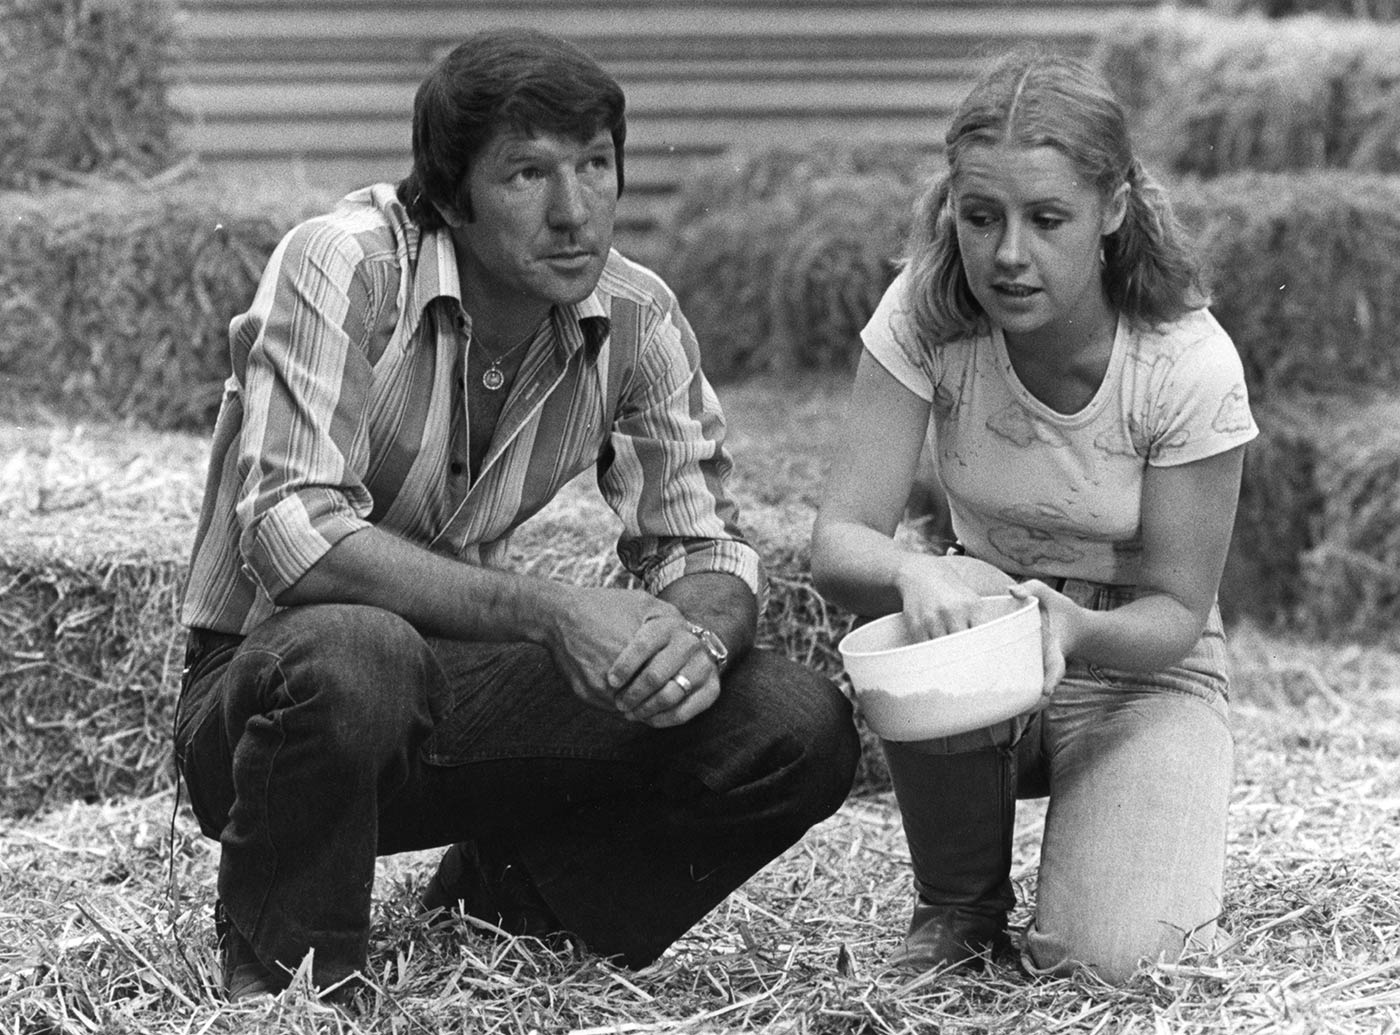 Don Spencer and Noni Hazlehurst - click to view larger image